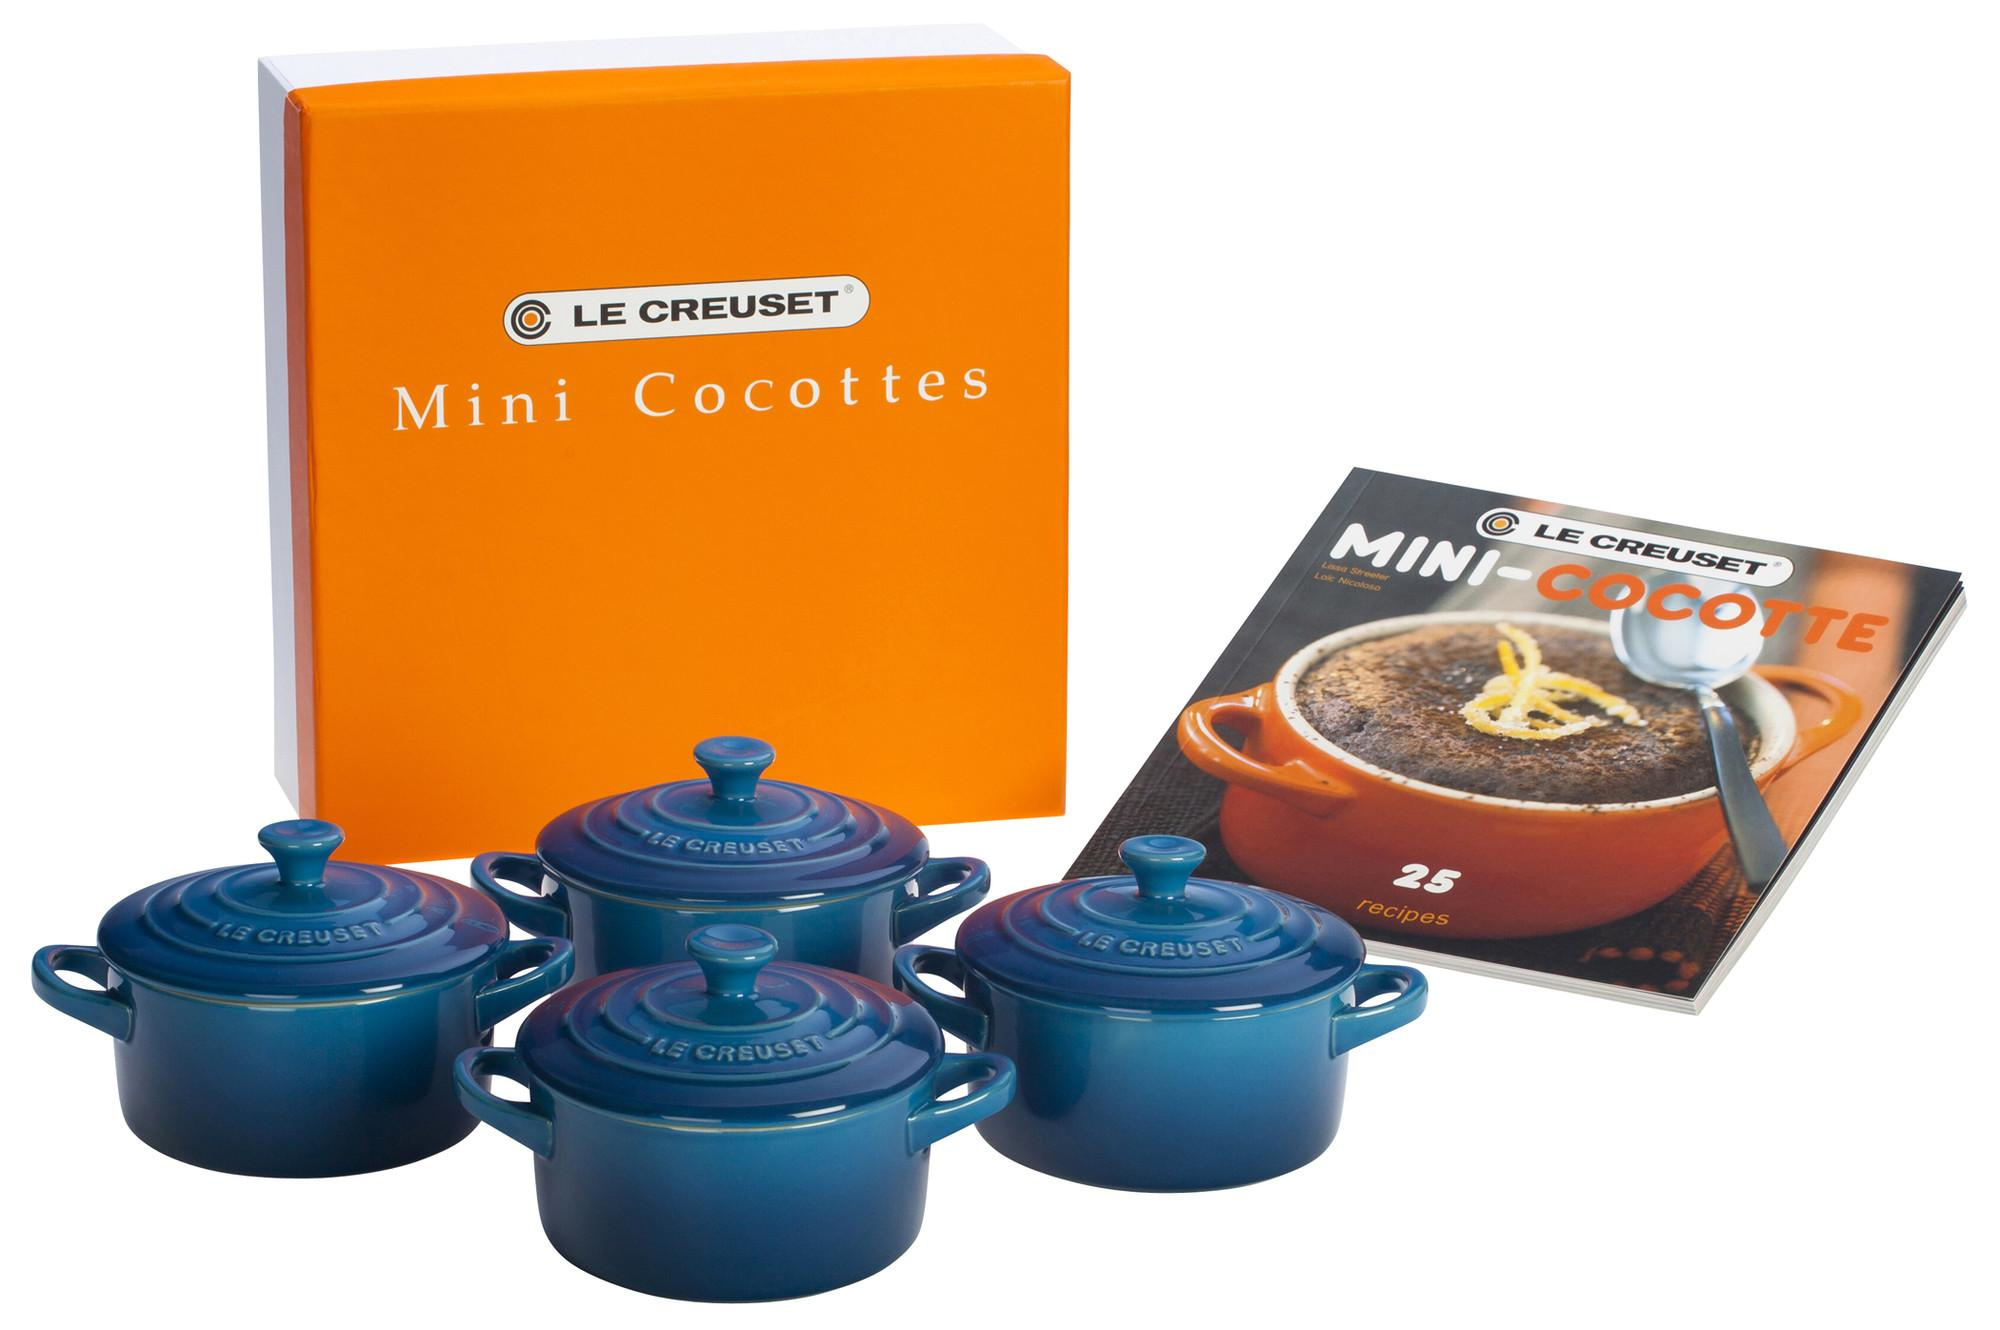 Le Creuset Set Of 4 Mini Cocottes With